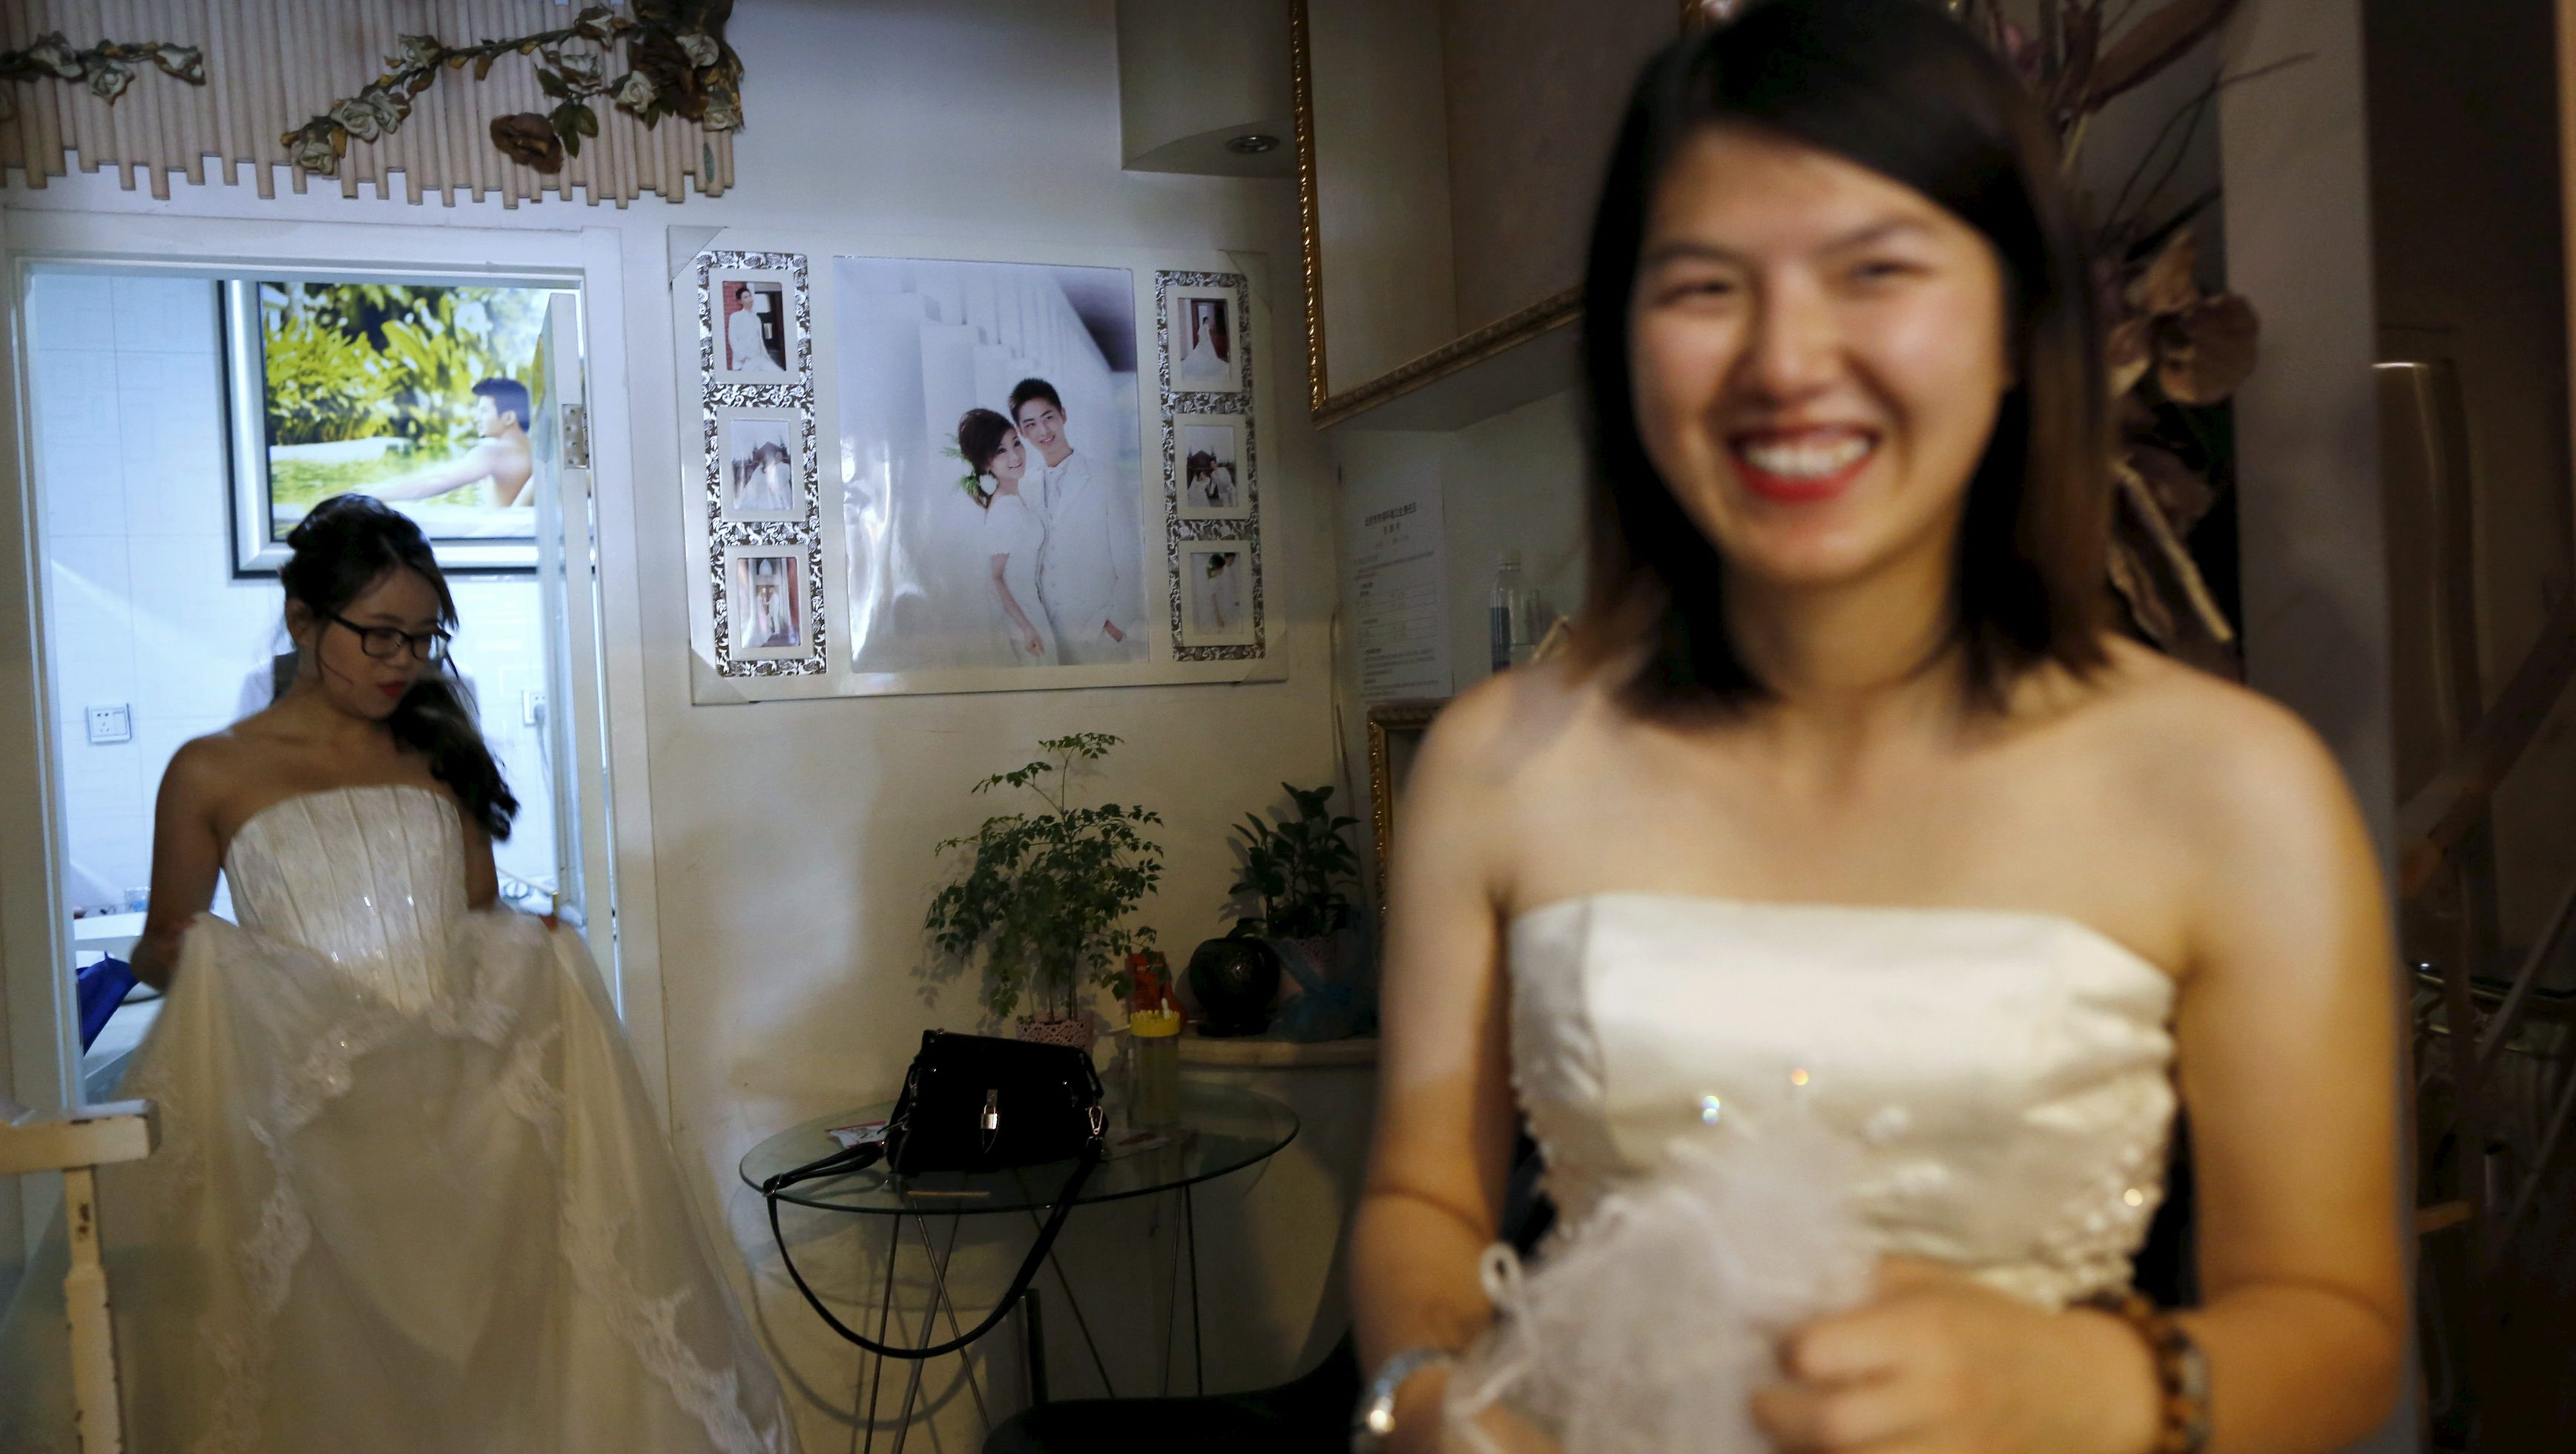 Li Tingting (R) smiles as she waits for her partner Teresa at a bridal photography studio while meeting the media in Beijing, China July 2, 2015. Li, a 25-year-old prominent women's rights activist who was released from detention in April, held a wedding ceremony with her partner Teresa on Thursday and announced their marriage in an effort to push for LGBT (lesbian, gay, bisexual, and transgender) rights in China.